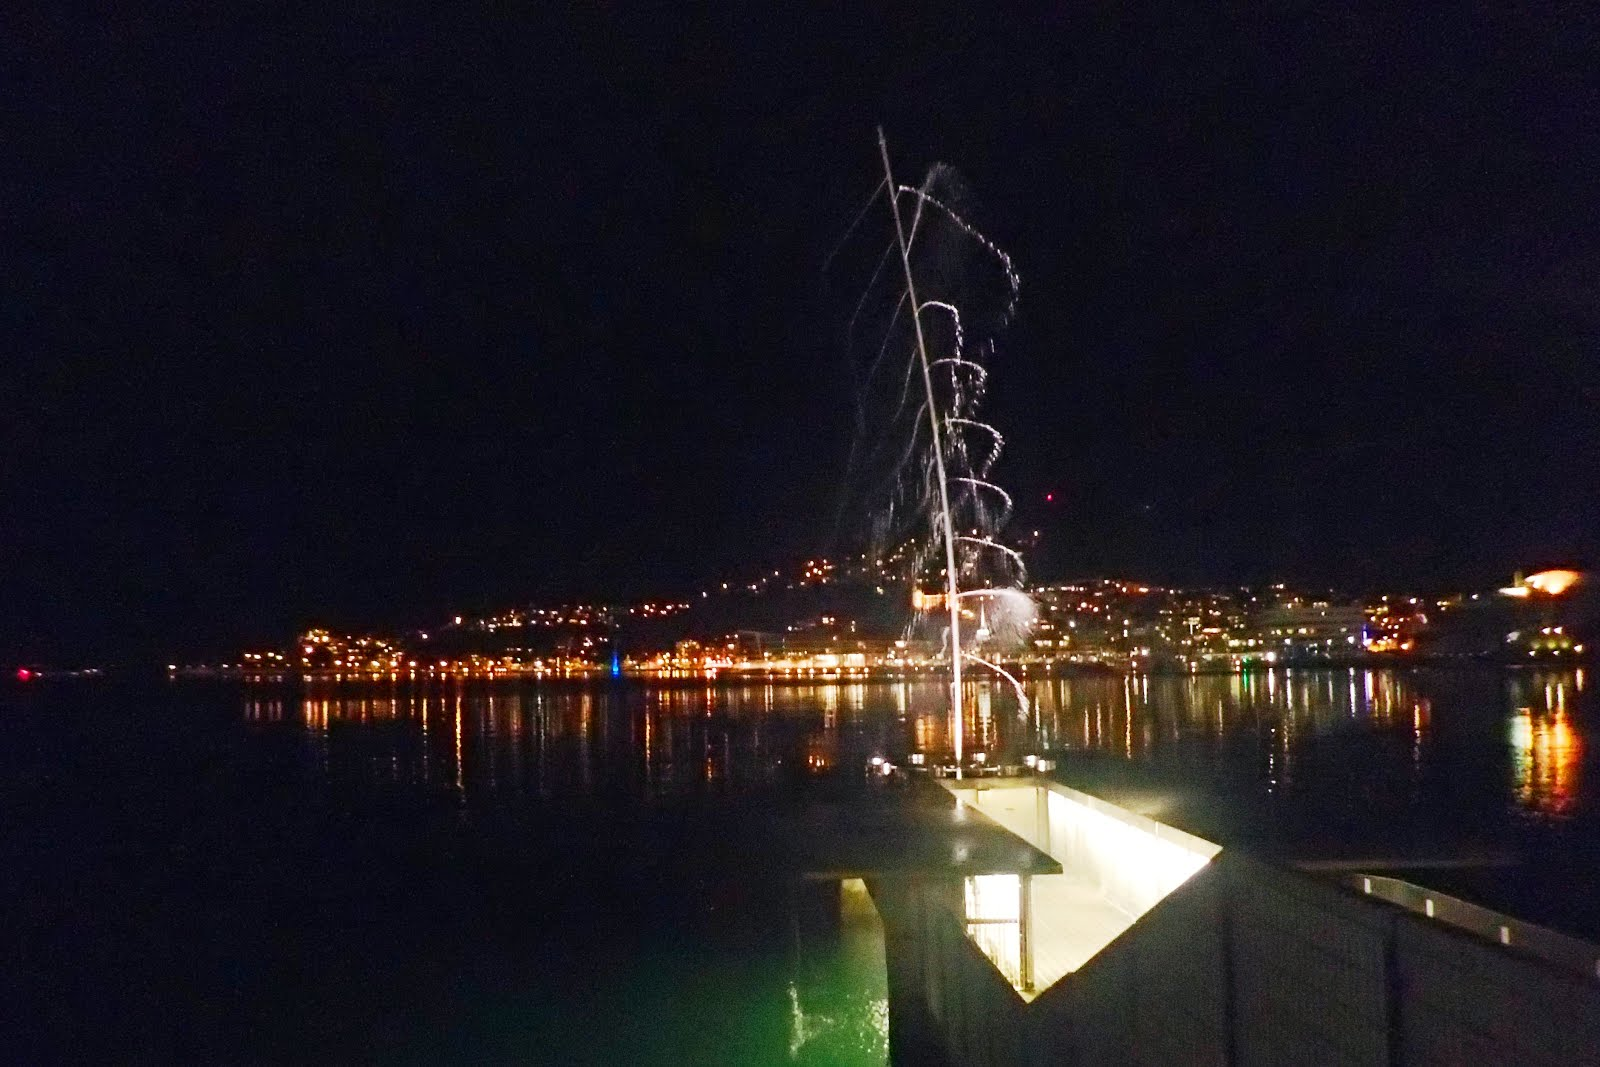 Len Lye water whirler on Wellington Harbour